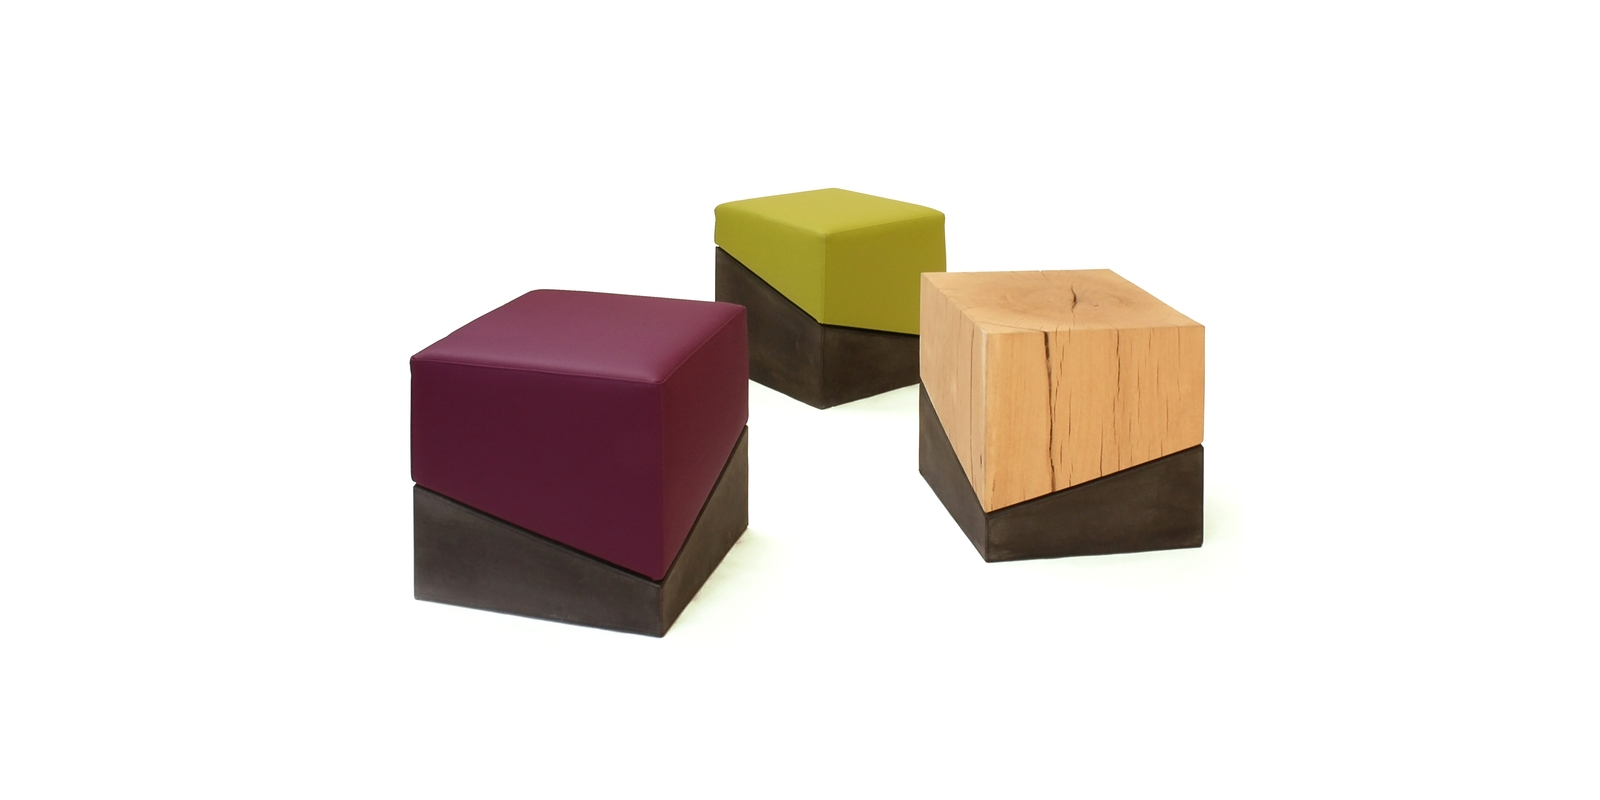 Designer Hocker Ideen Für Hocker Design Ideen Top